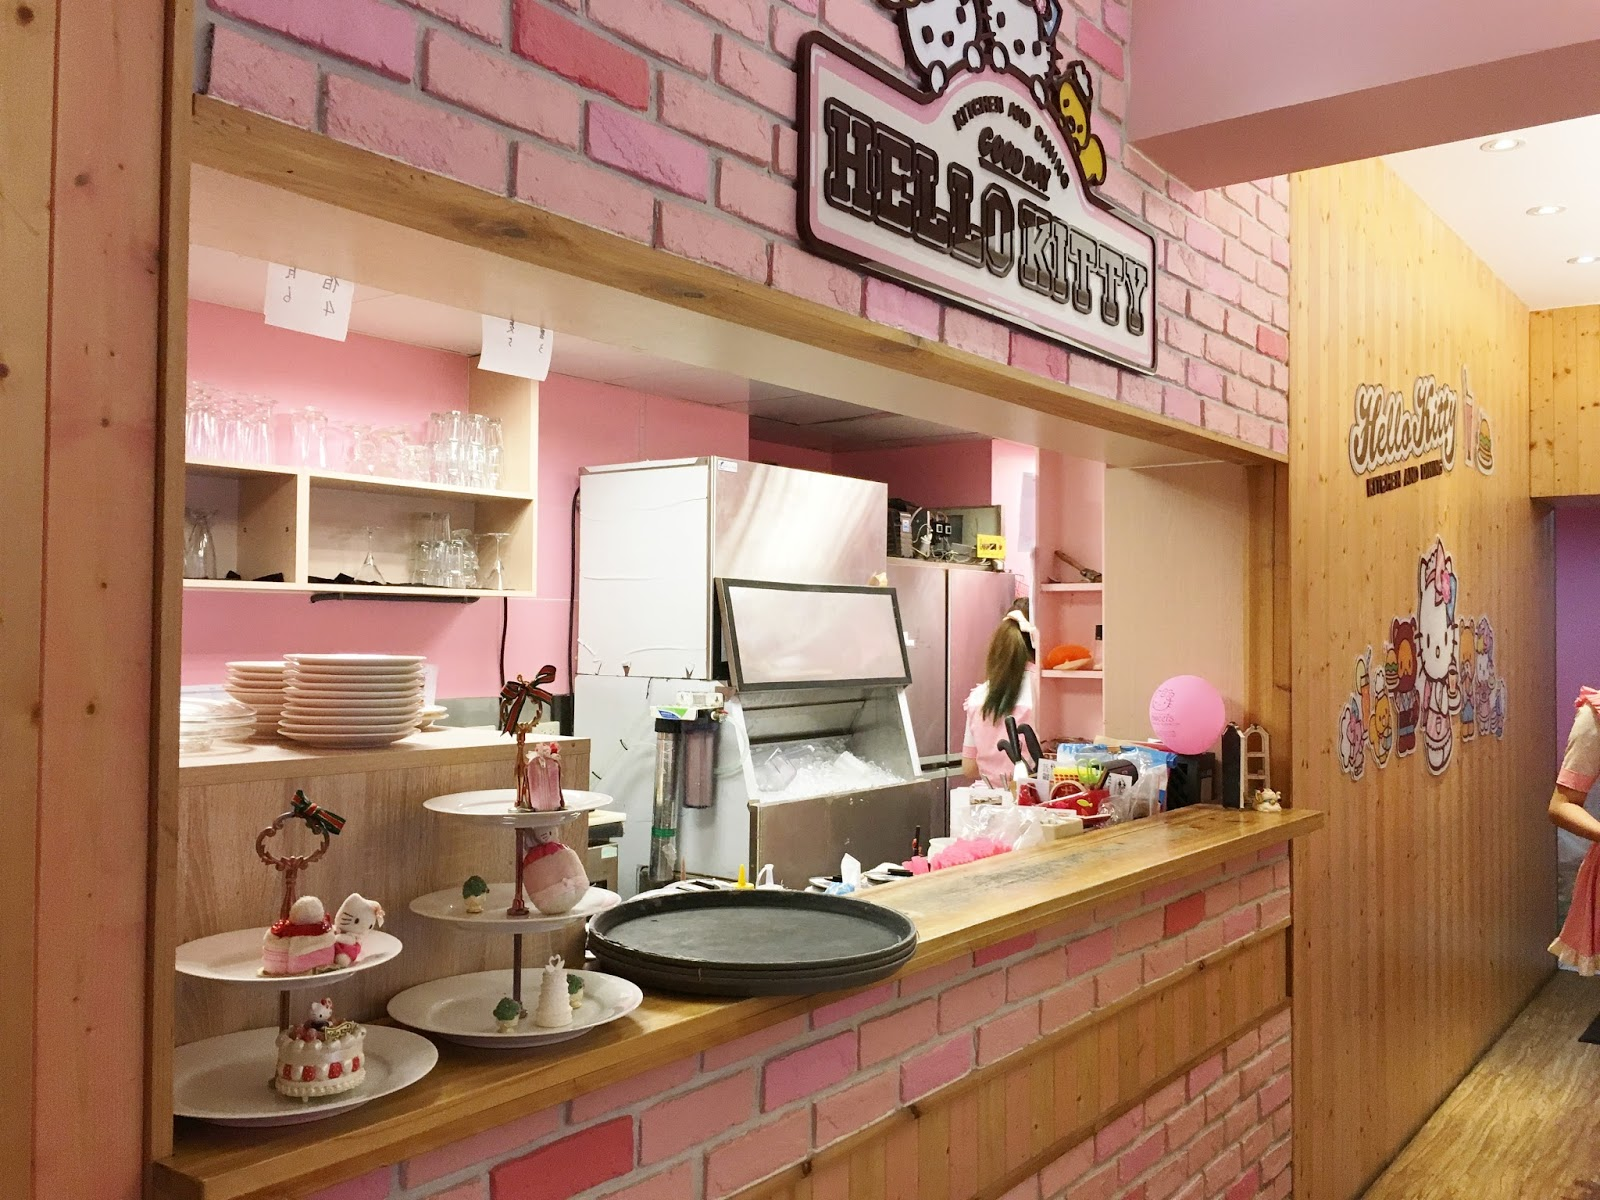 Hello kitty kitchen design - Passing Through To The Staircase Leading To The Second Floor Was The Kitchen Service Area Pink Kitty Fied